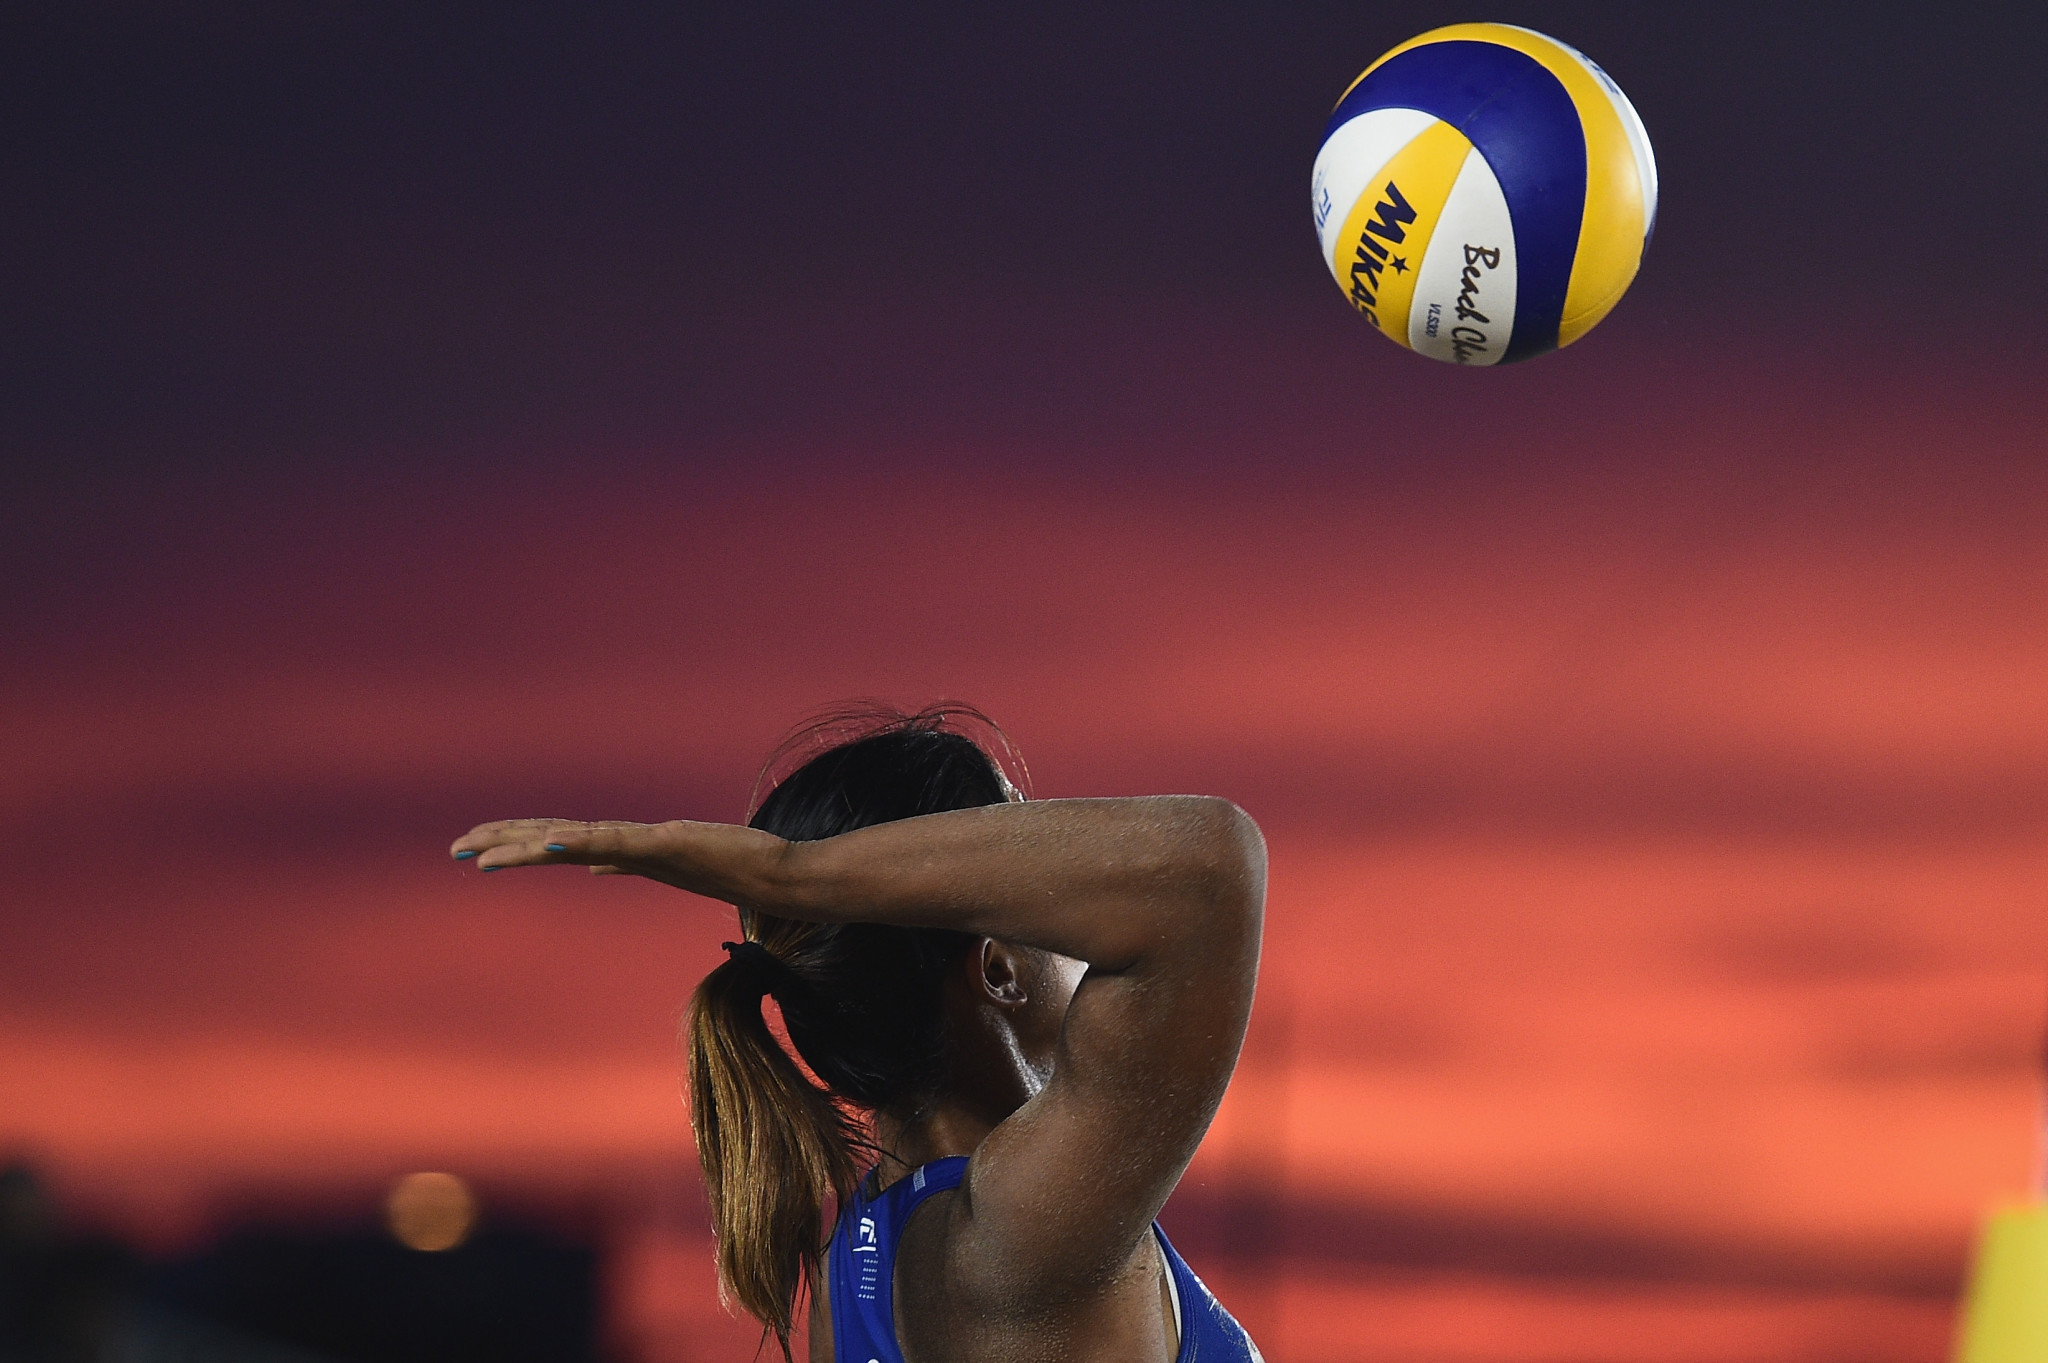 FIVB pushes back Under-21 and Under-19 Beach Volleyball World Championships over Thai COVID-19 restrictions